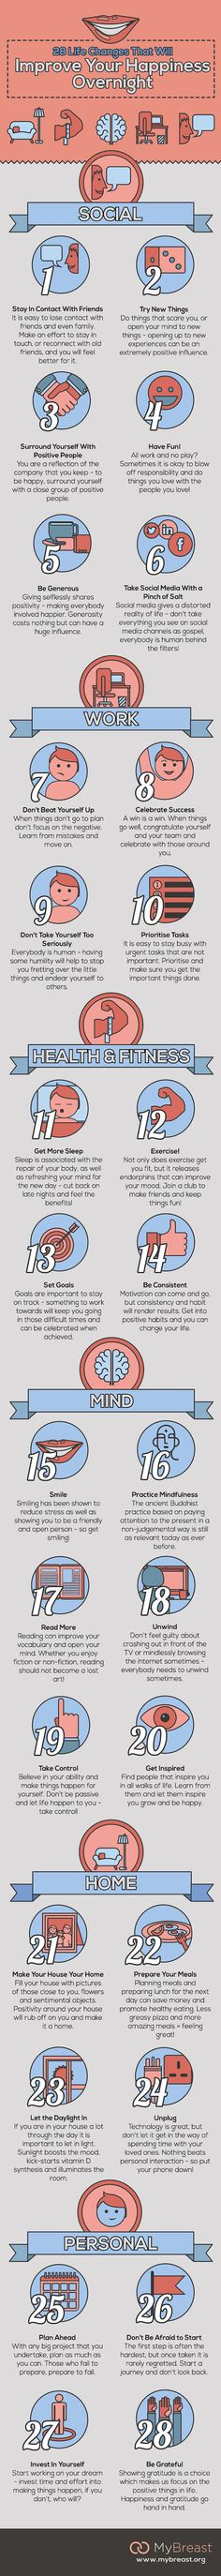 Infographic: 28 Life Changes That Will Improve Your Happiness Overnight - DesignTAXI.com